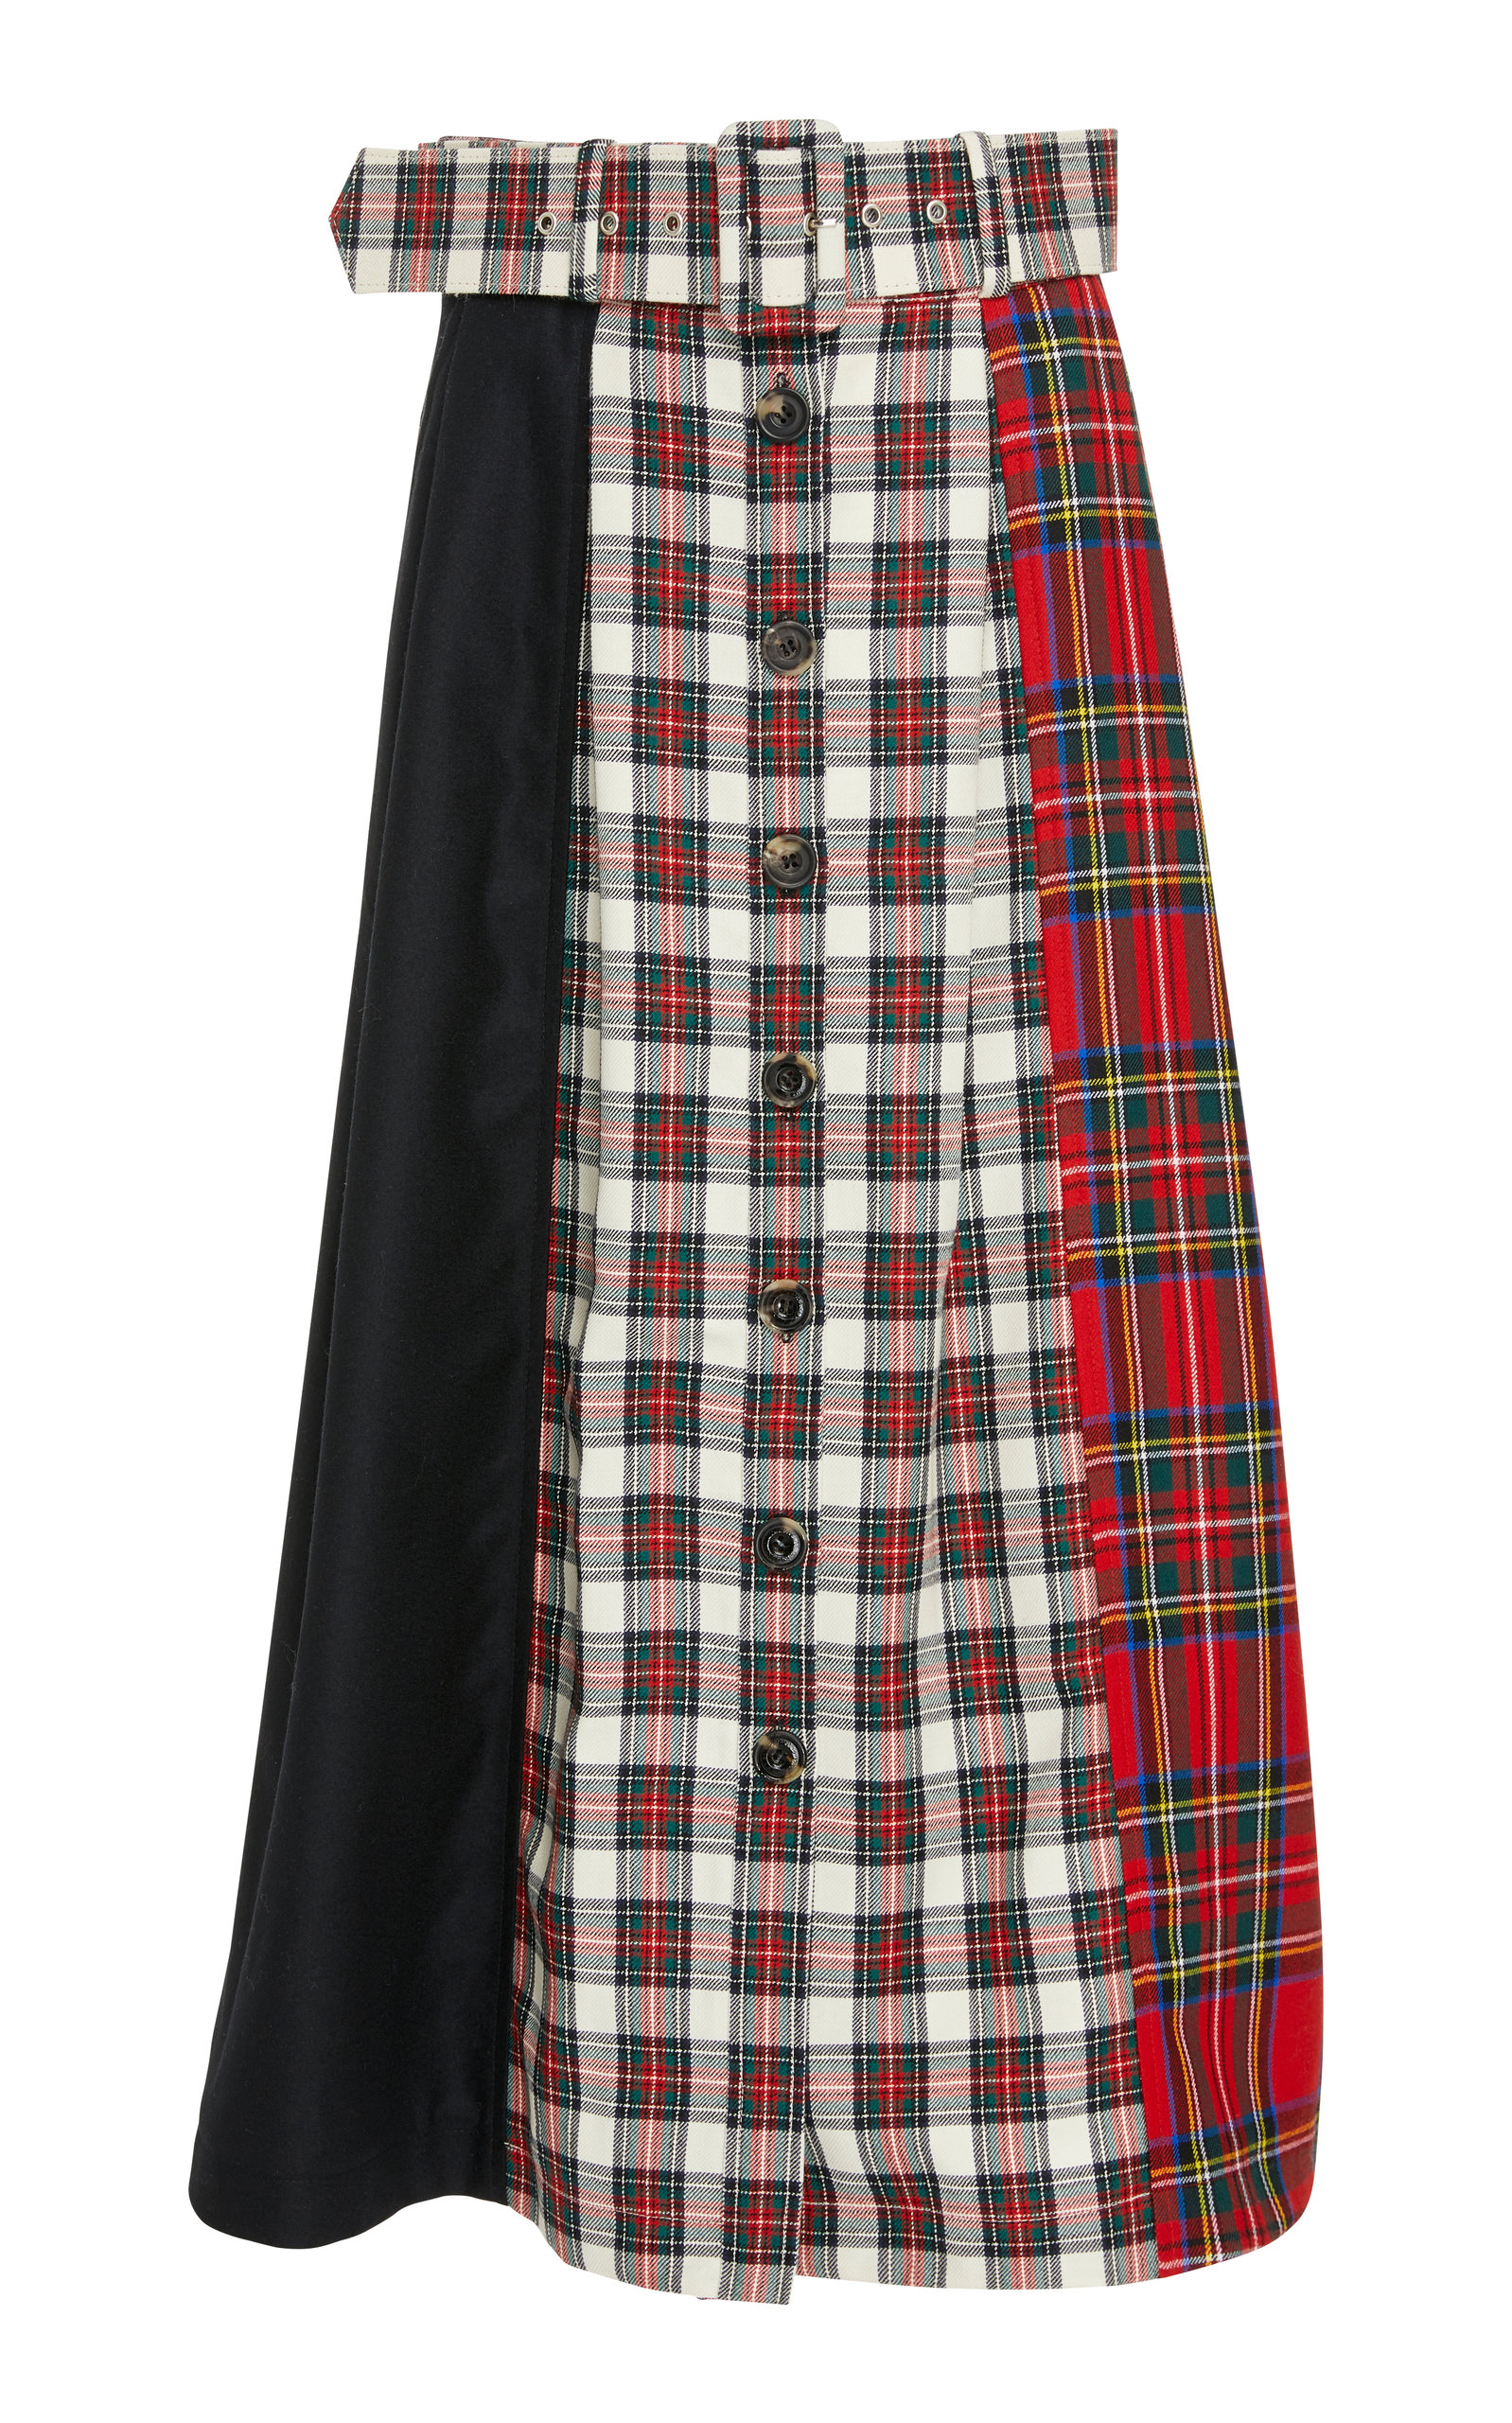 ISA ARFEN Tartan Poatchwork Skirt With Middle Buttons-Line in Red